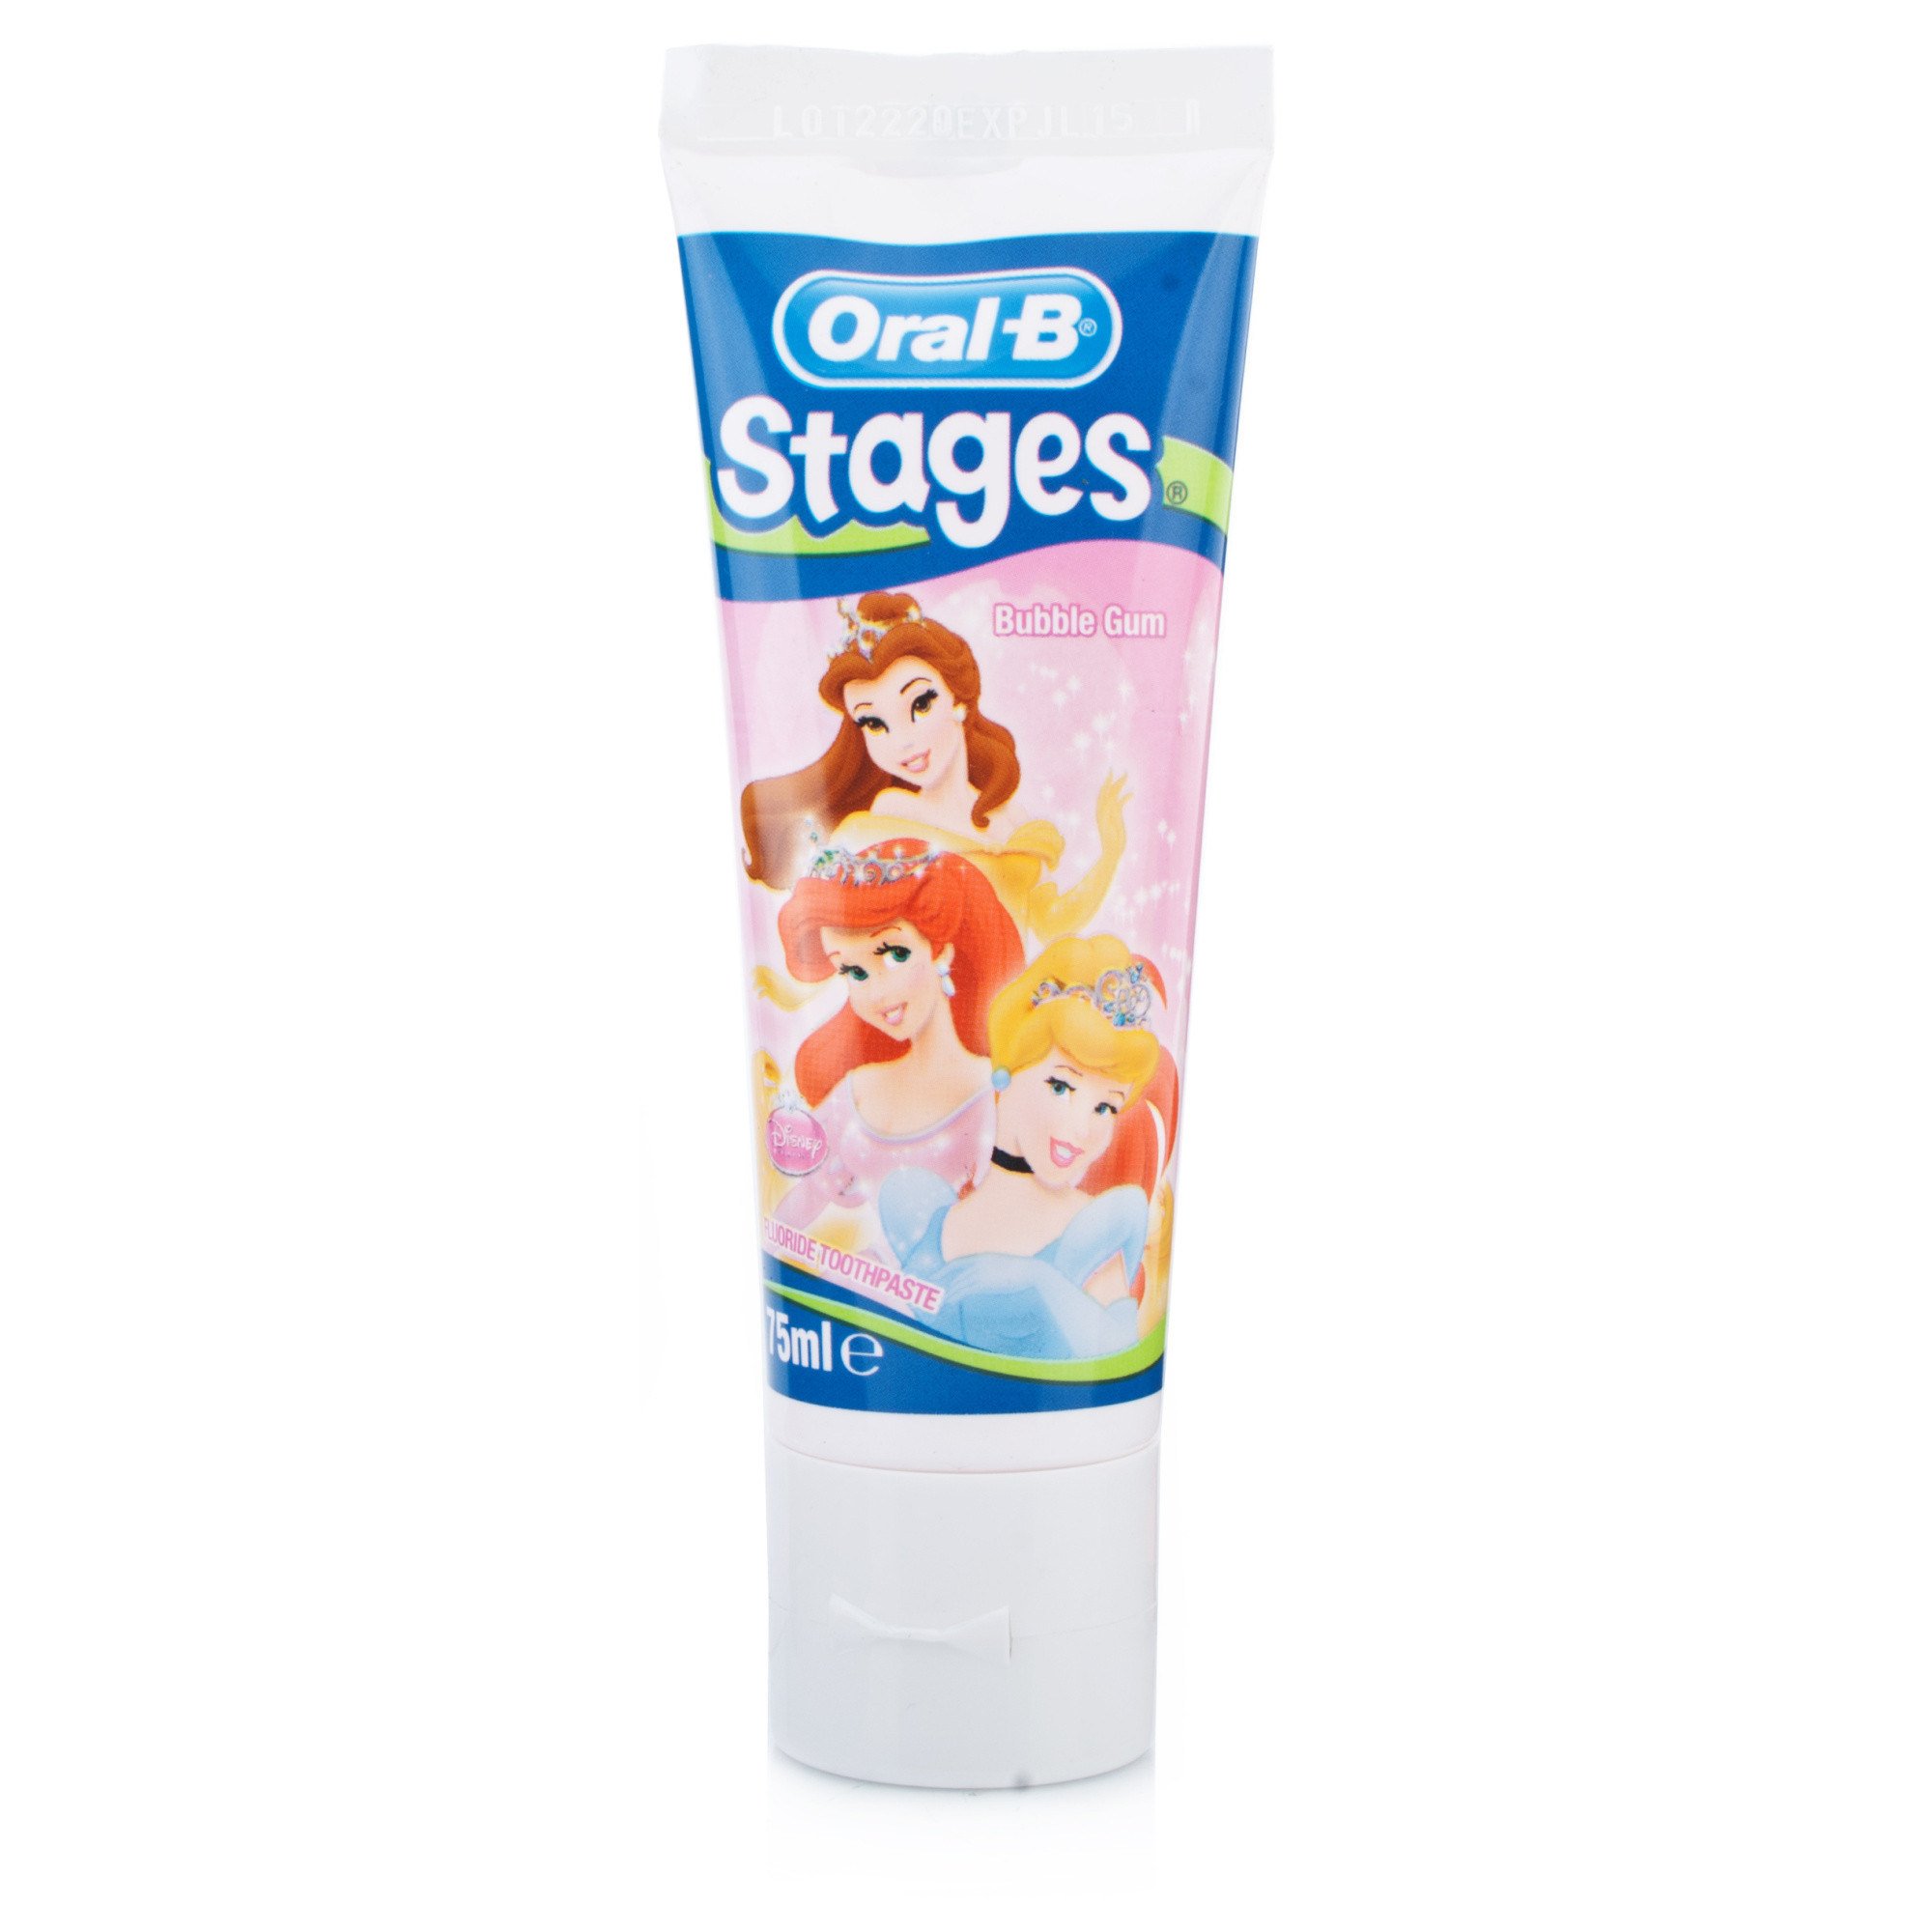 Oral-B Stages 3 Disney Princess Toothpaste 5-7 years